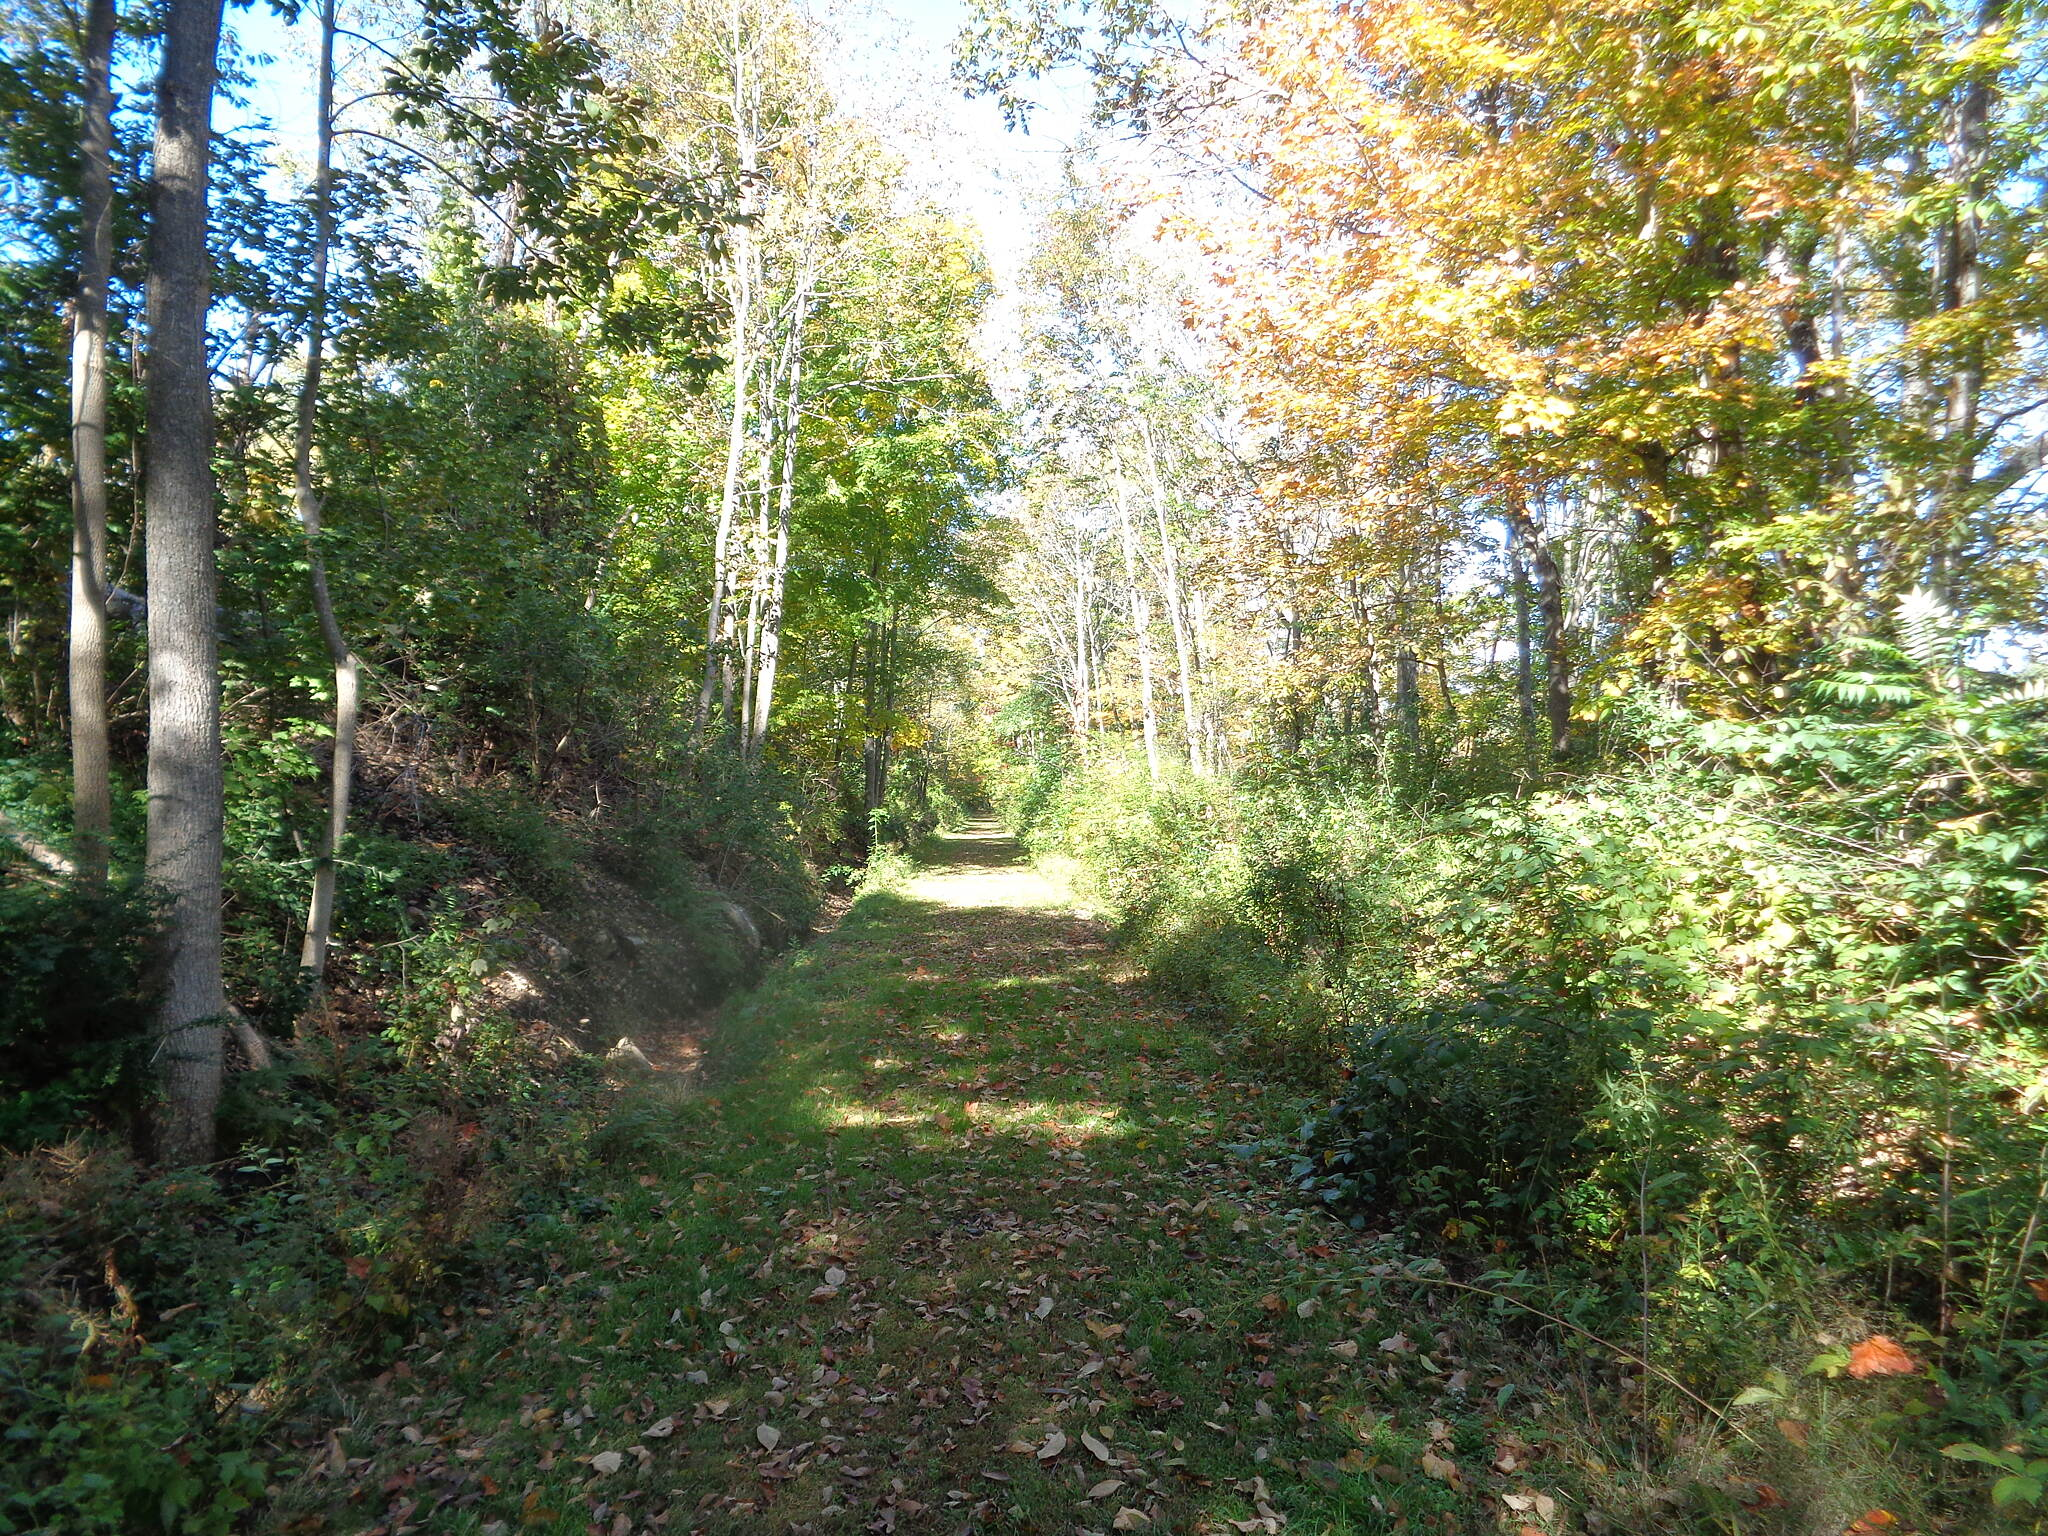 Grand Trunk Trail Nice trail in west Dudley This is a view of the very nice trail with good surface near the west edge of Dudley. on 10/5/16